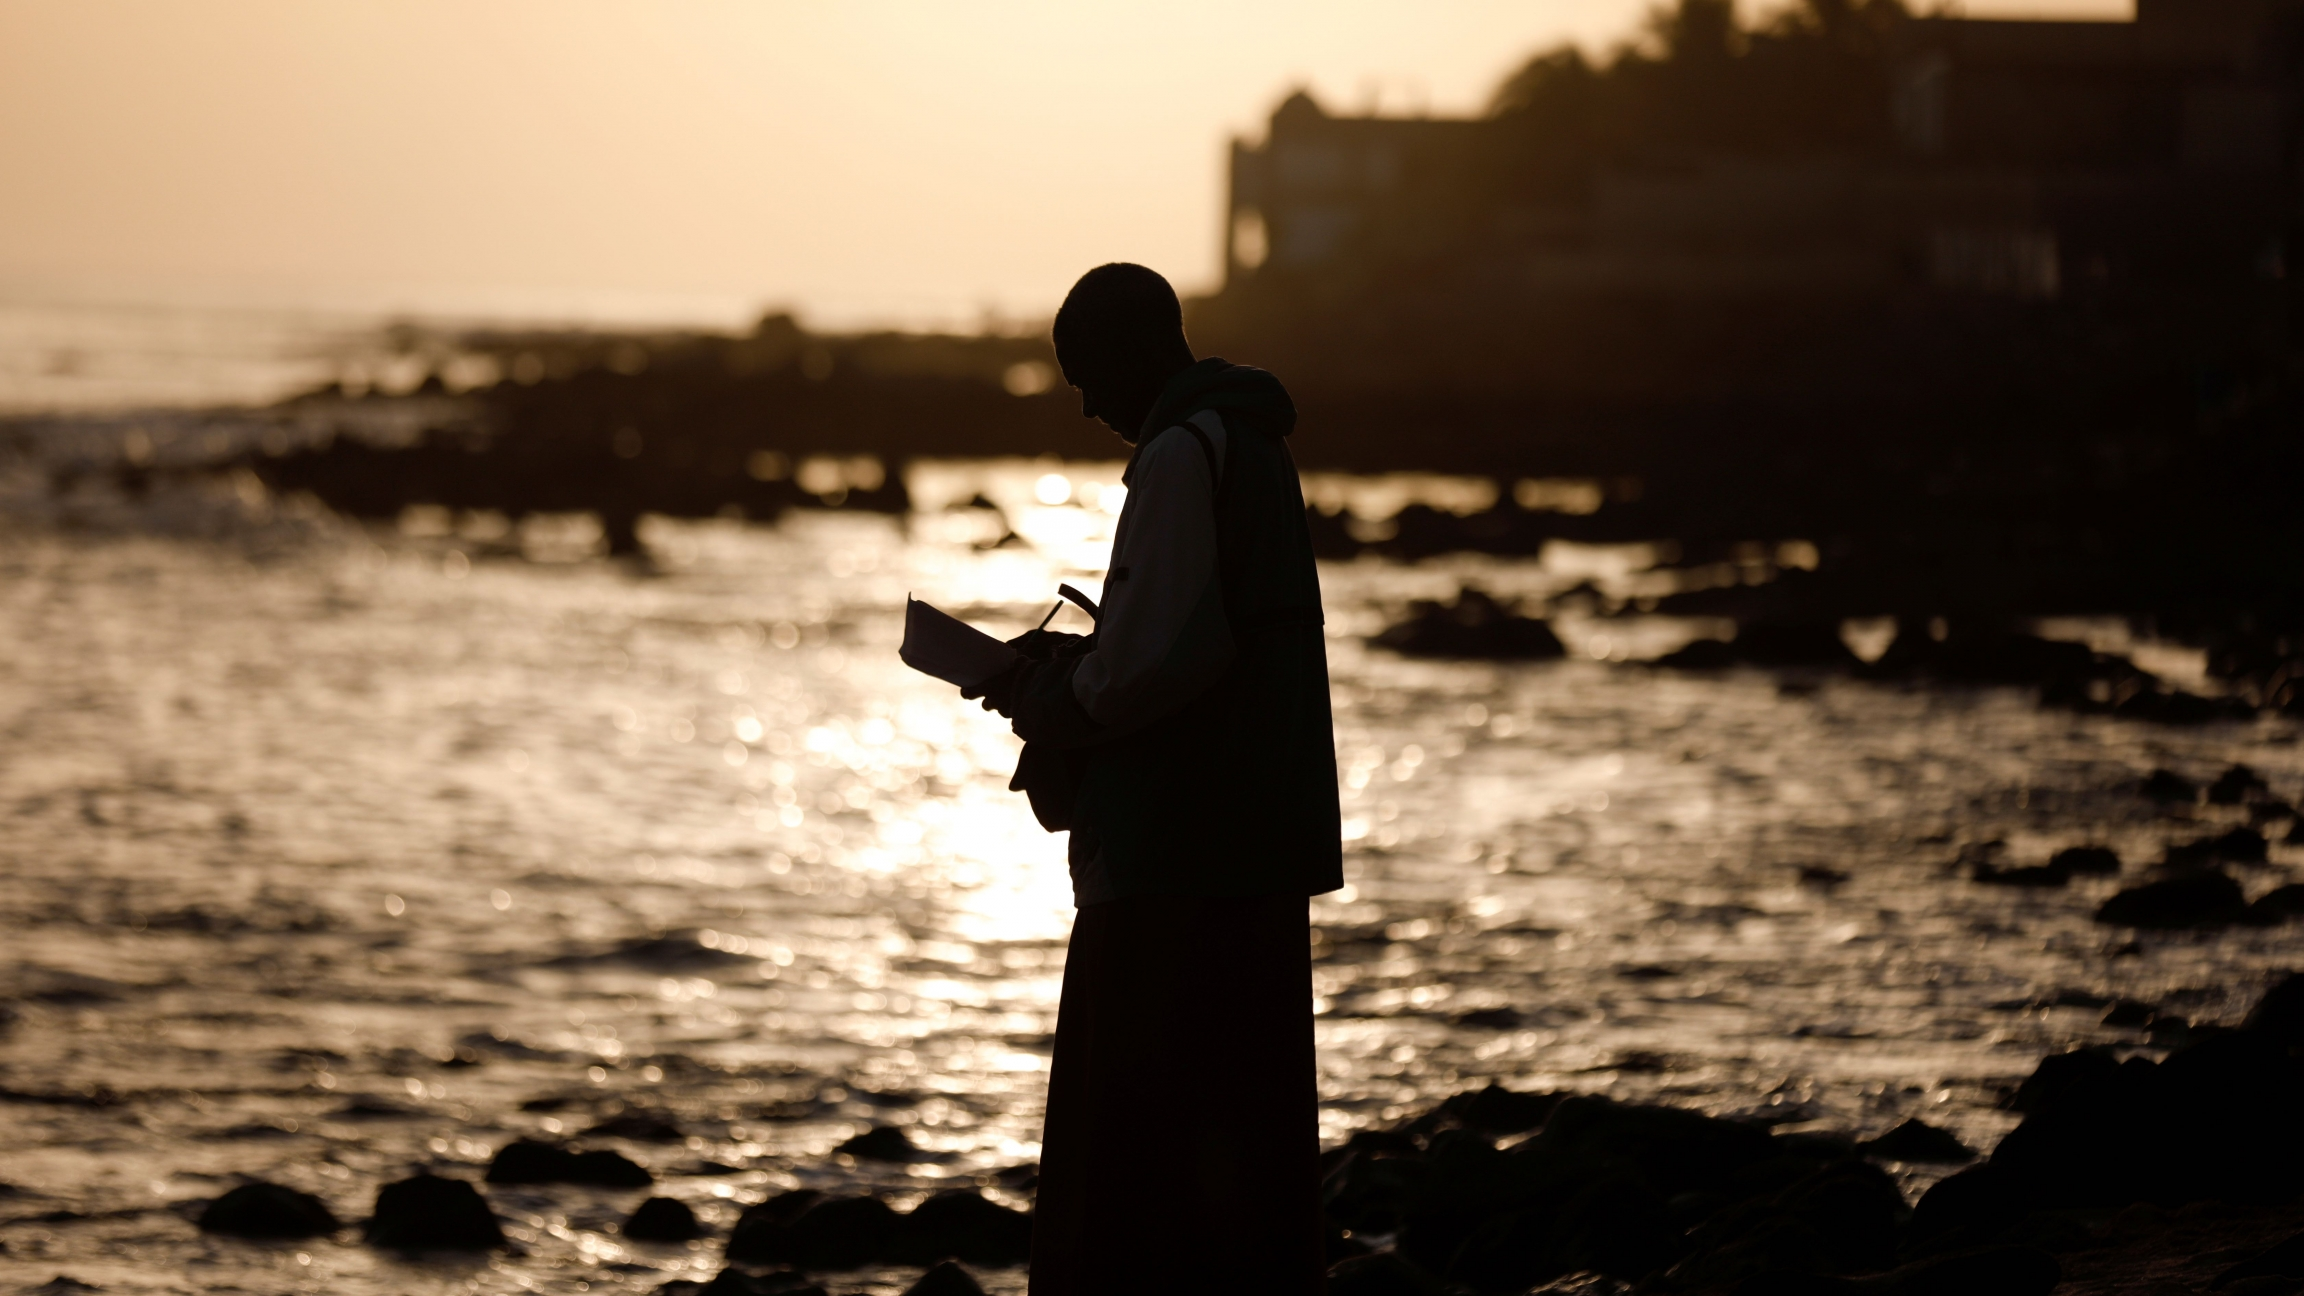 A man meditates at the beach amid the outbreak of the coronavirus disease (COVID-19), in Dakar, Senegal, March 26, 2020.